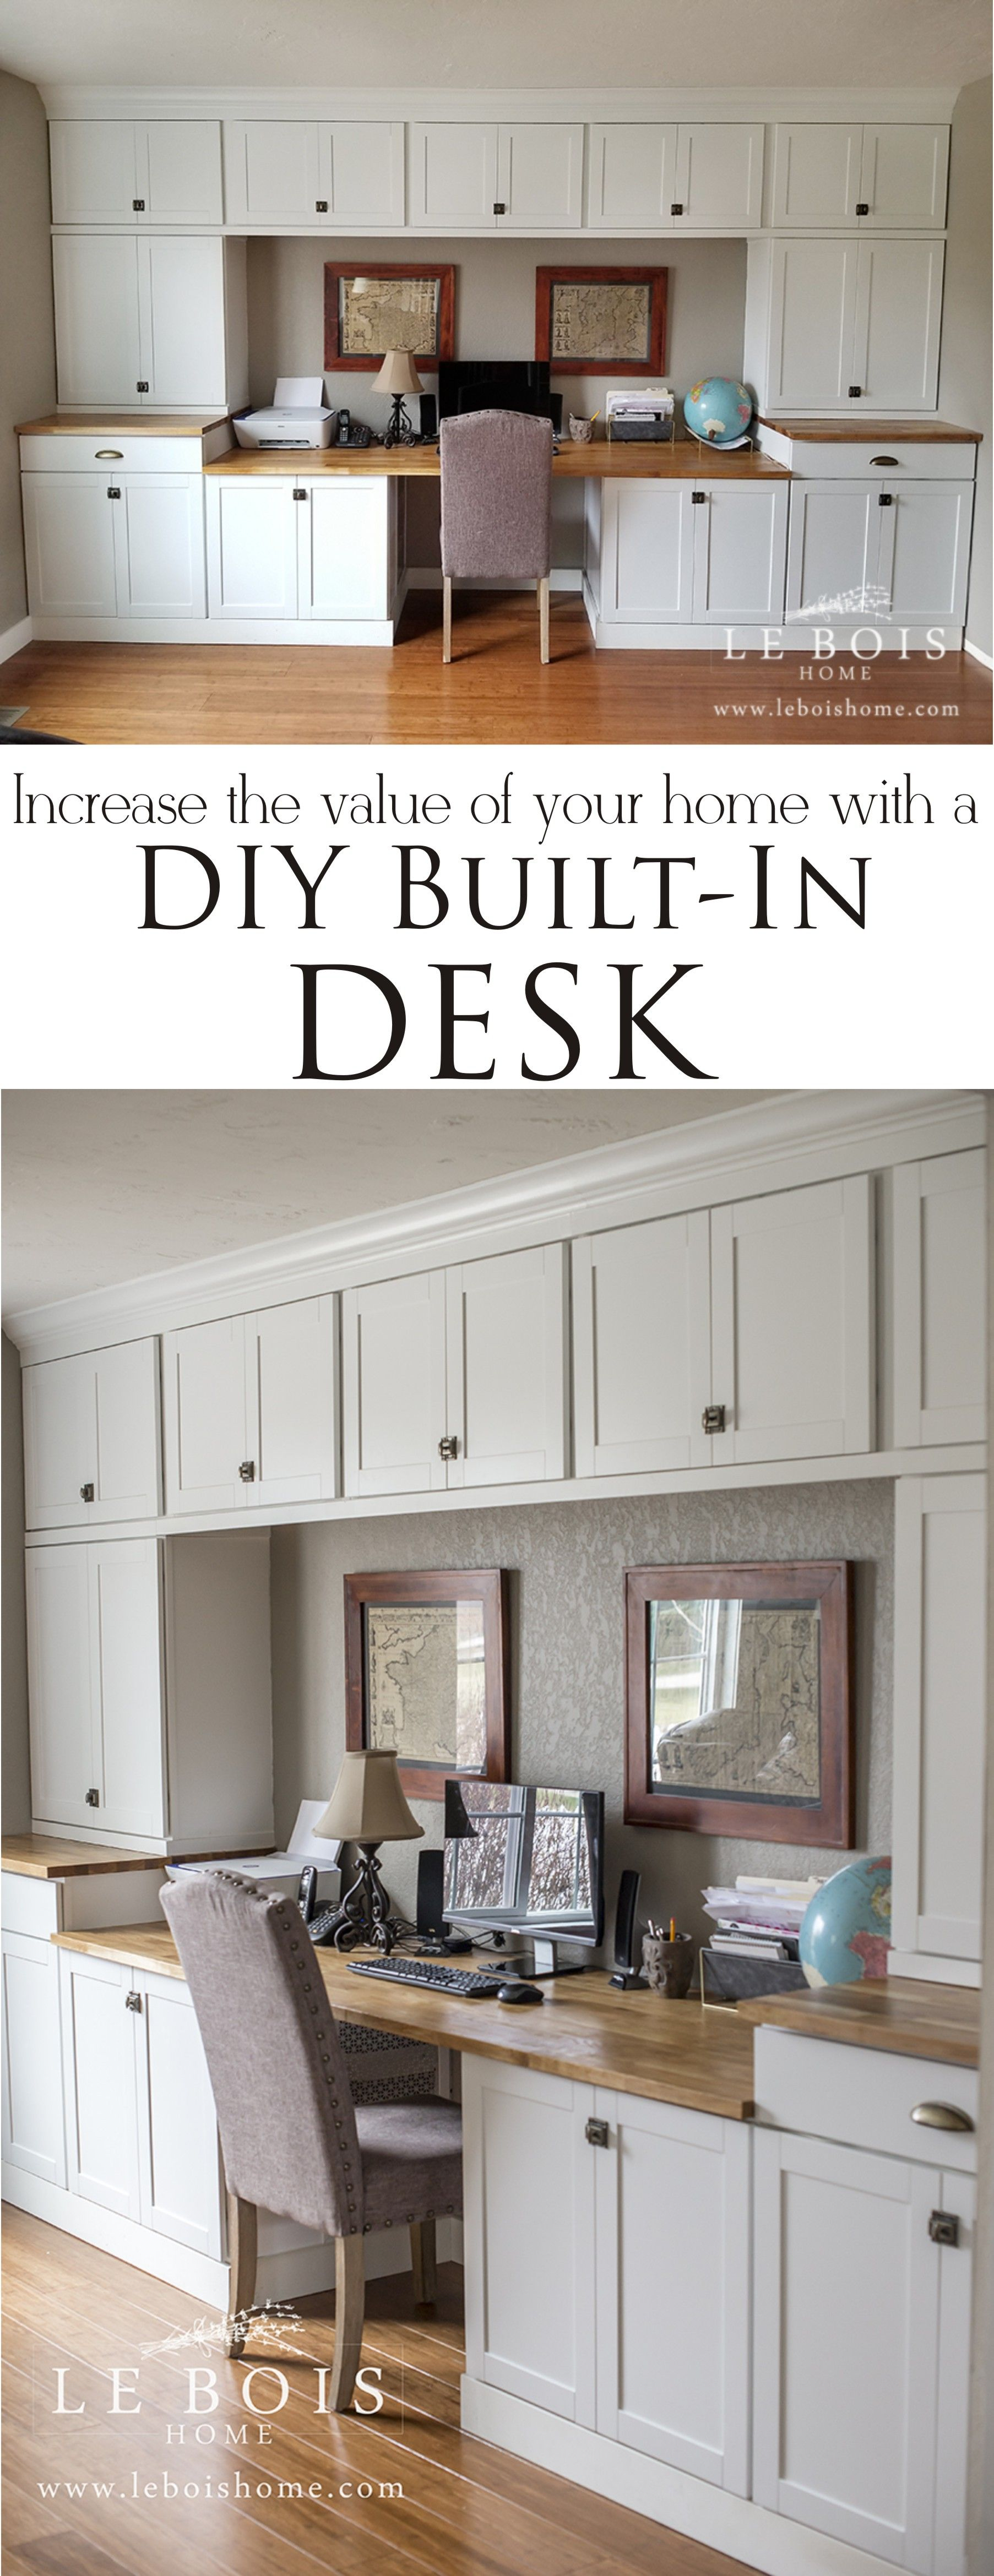 Built In Desk Using In Stock Cabinets In 2020 Home Office Cabinets Built In Desk Office Built Ins